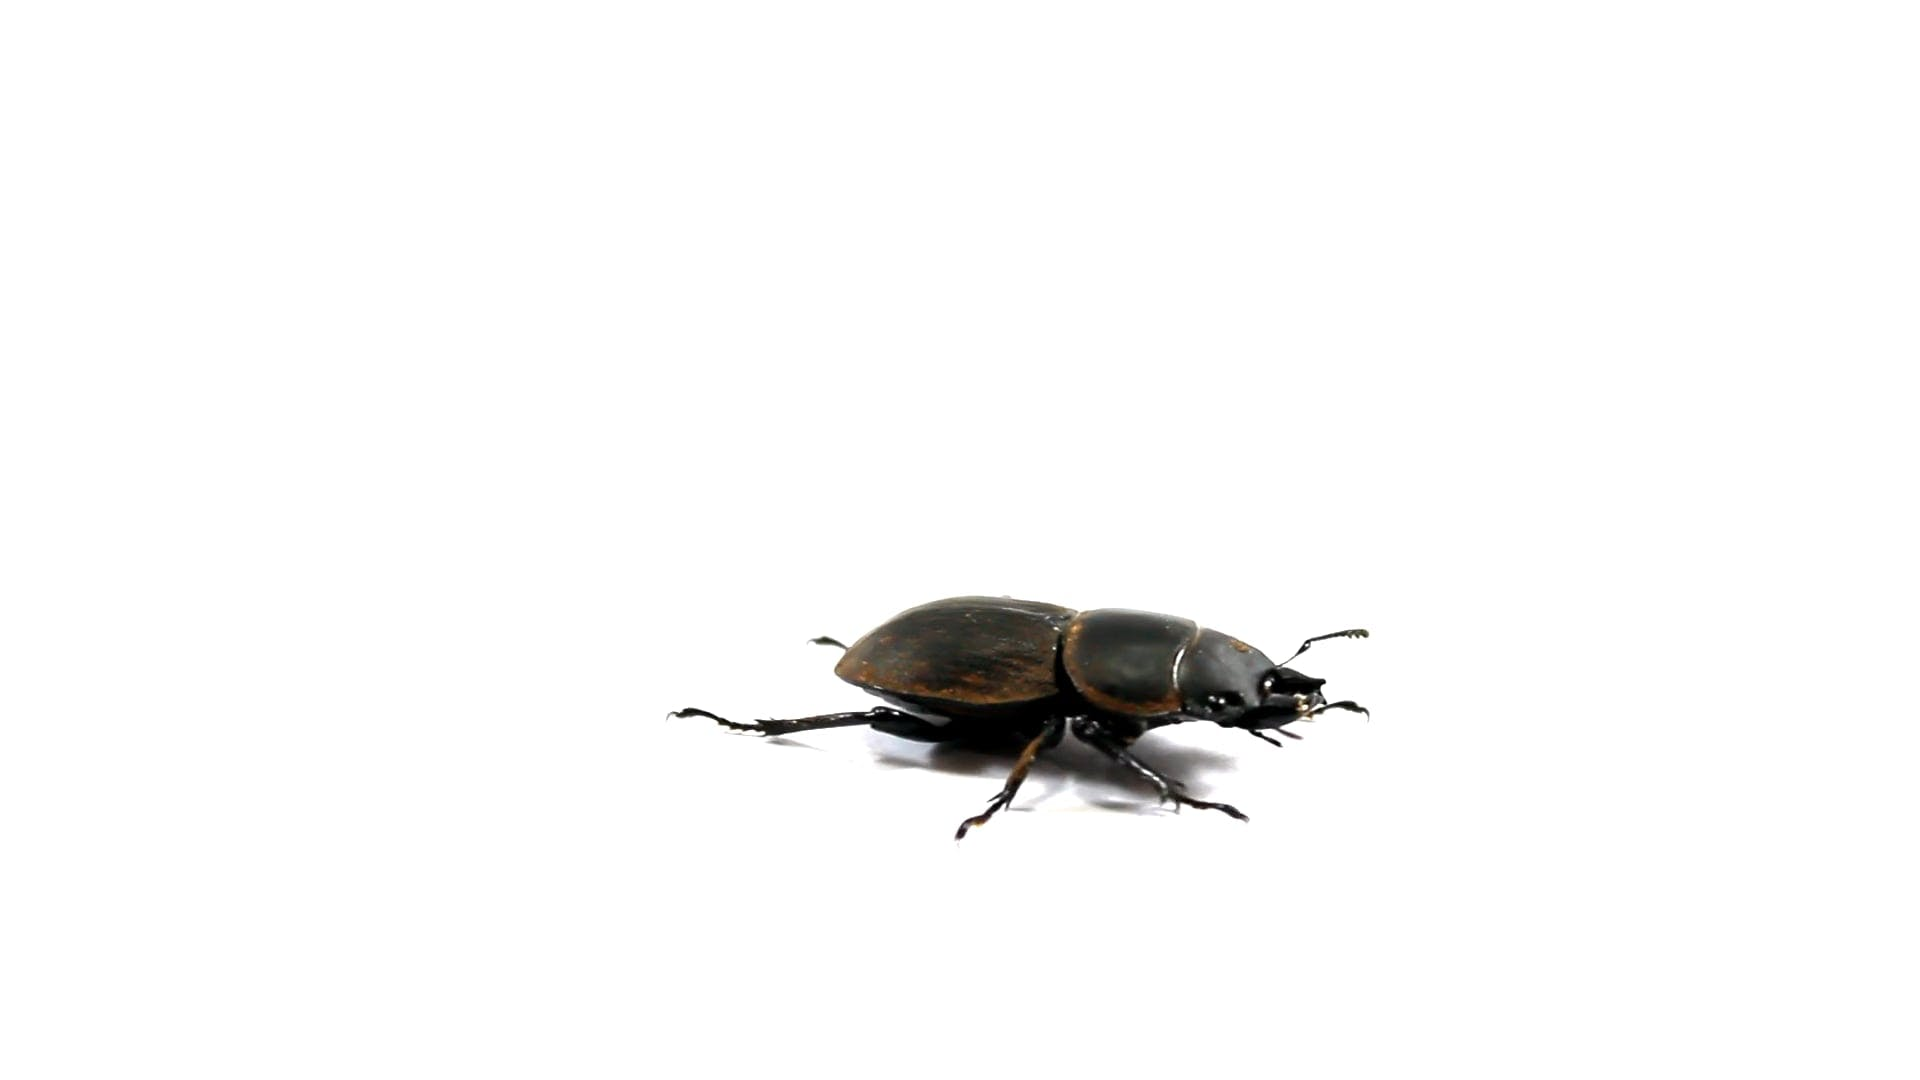 Video Of A Beetle